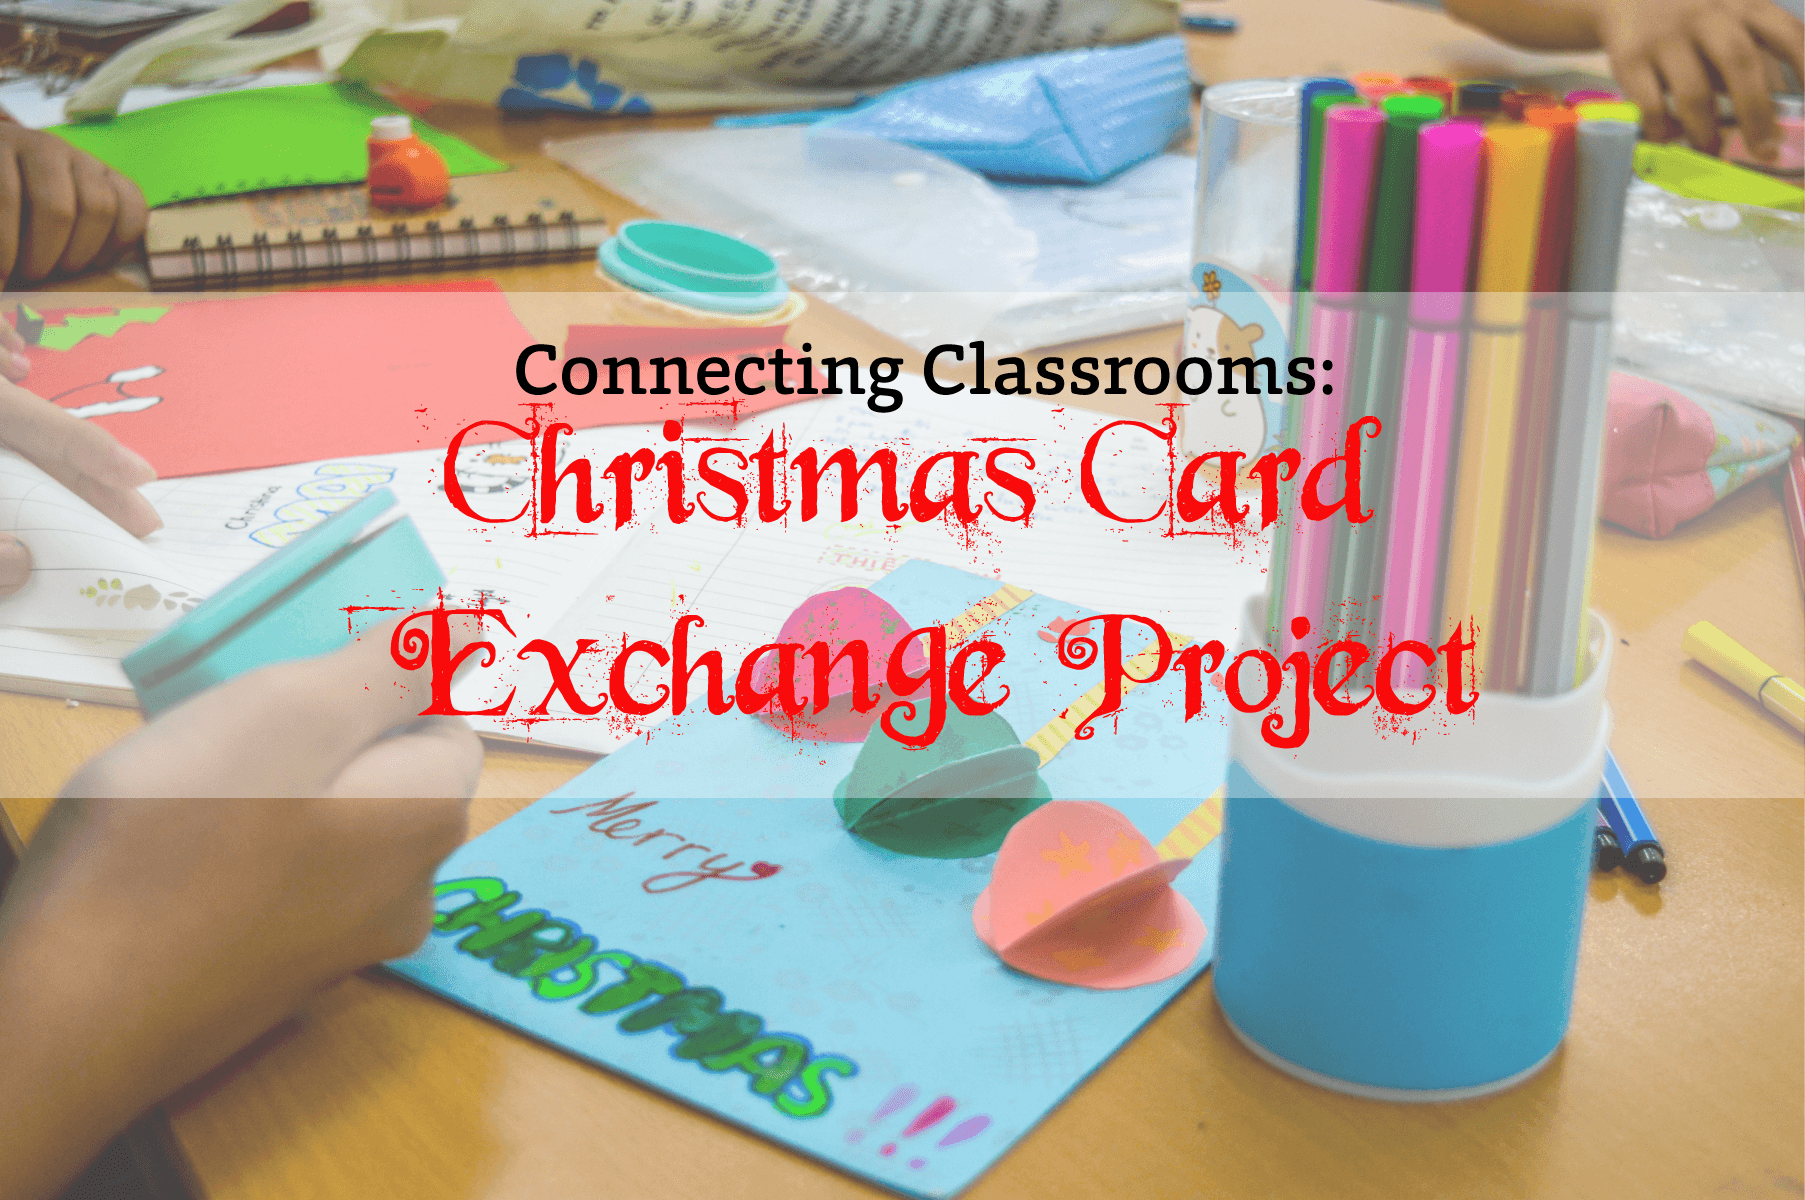 Connecting Classrooms: Christmas Card Exchange Project